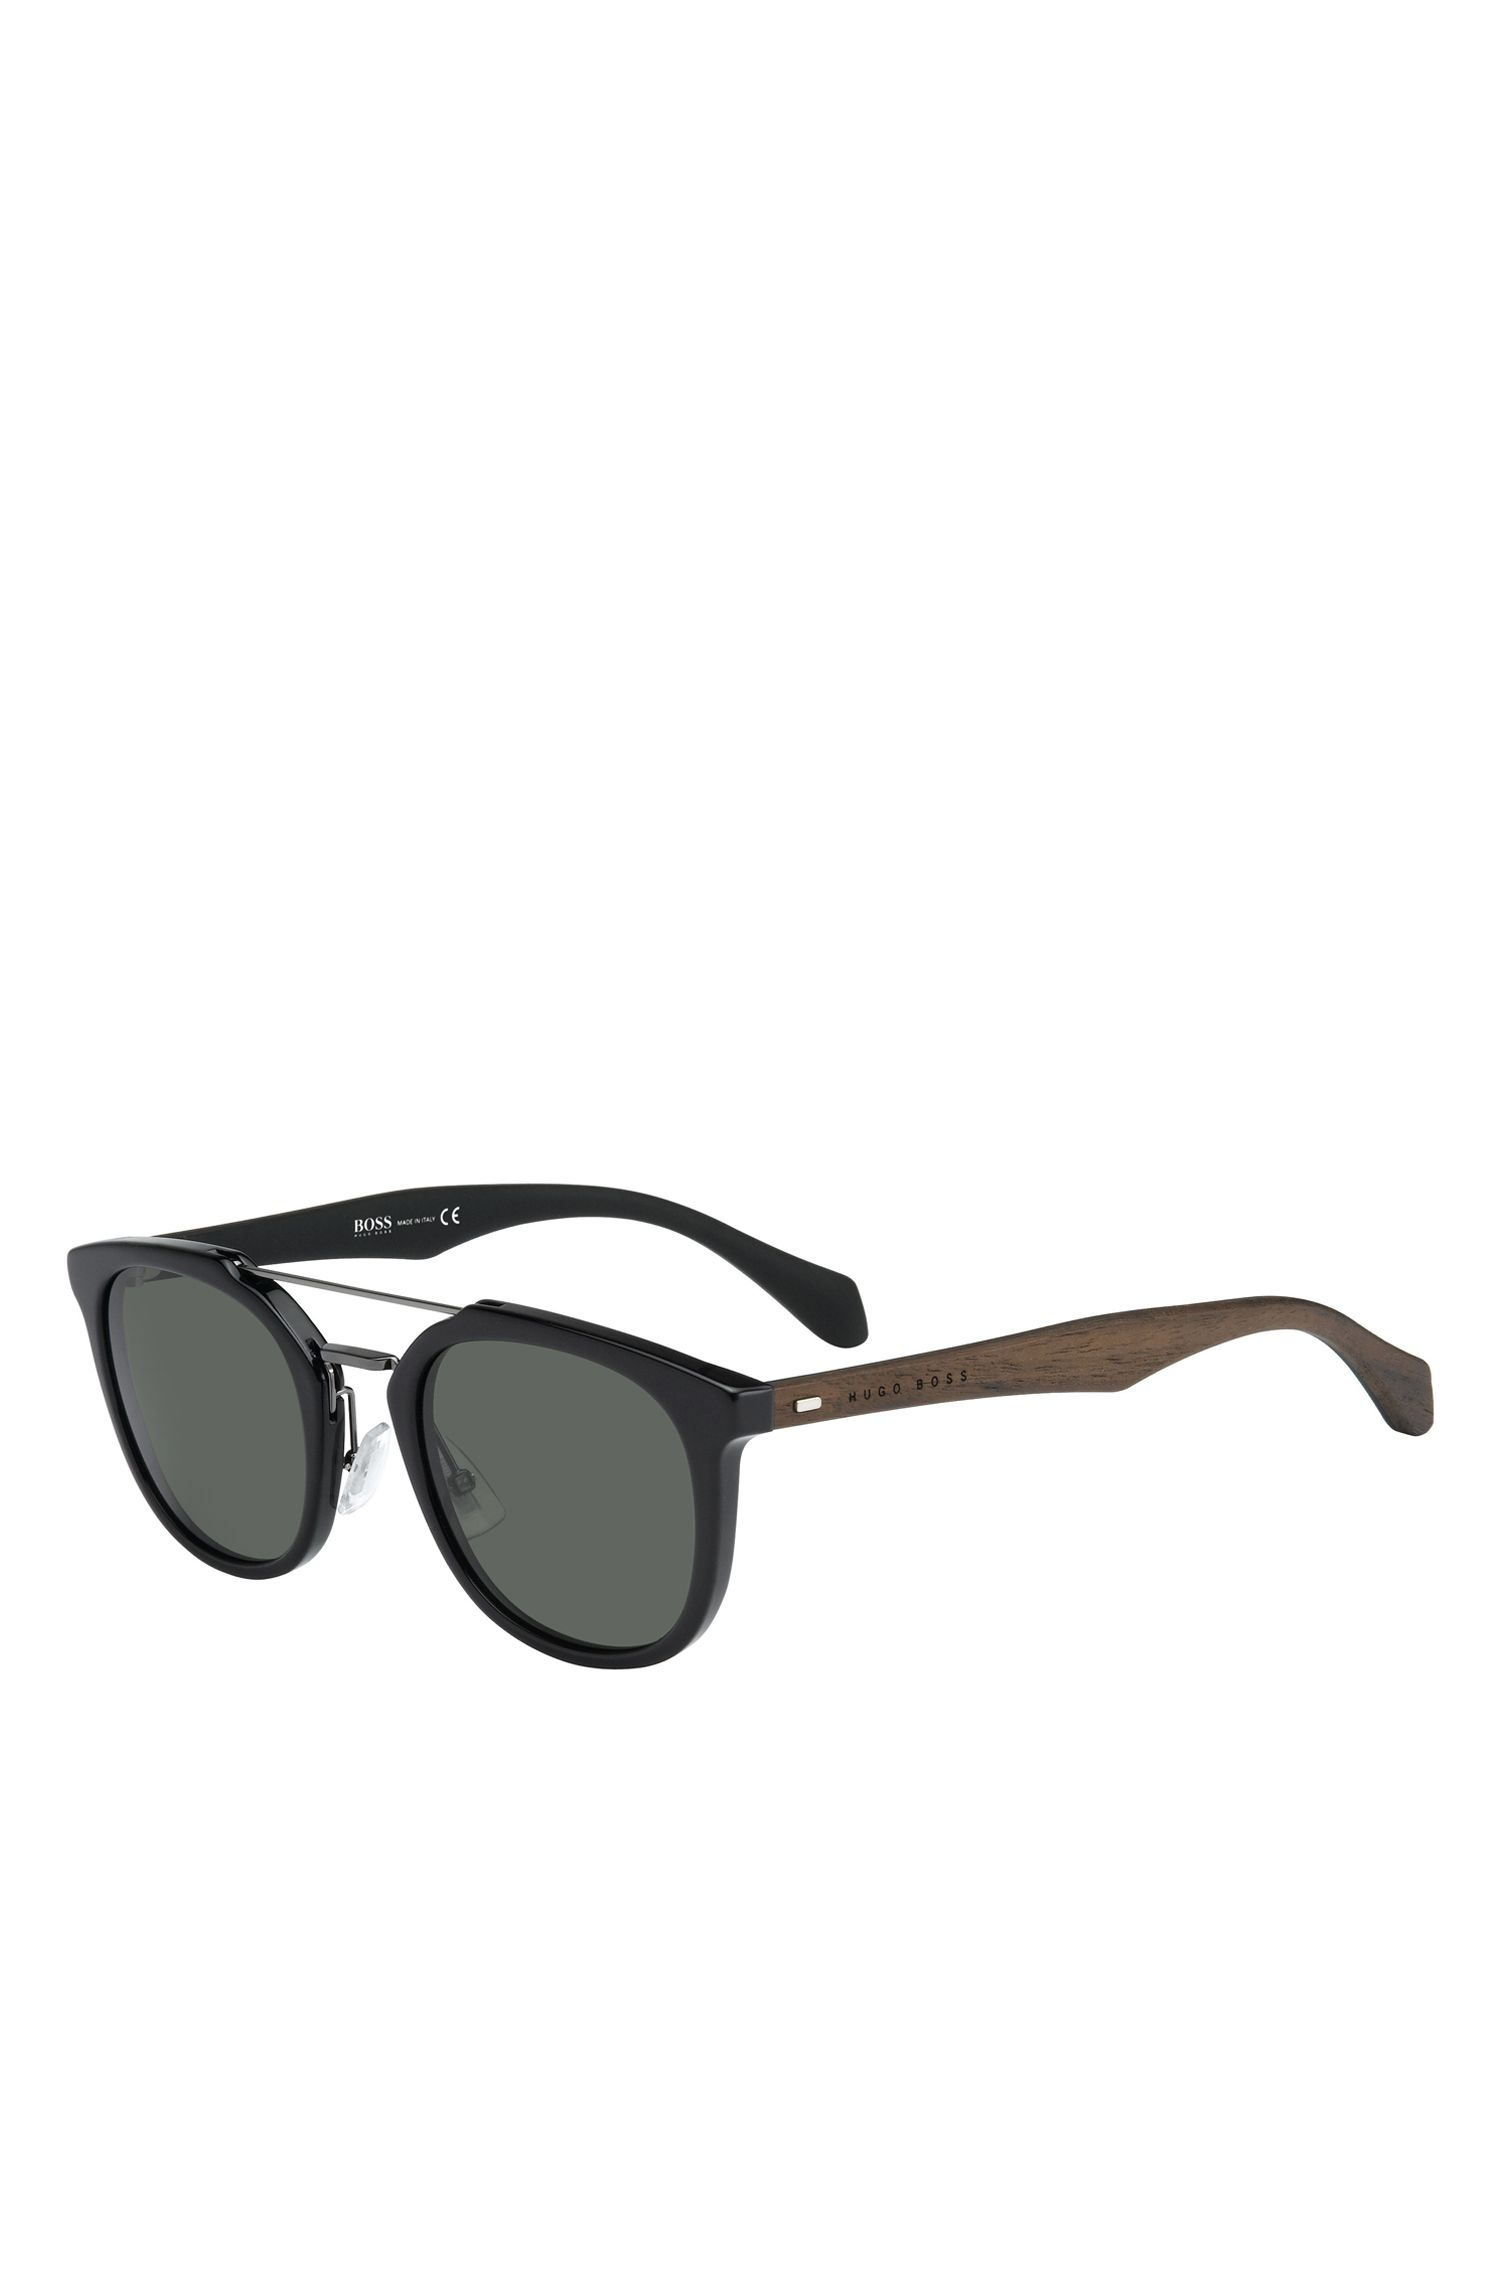 'BOSS 0777S' | Gray Green Lens Clubmaster Sunglasses